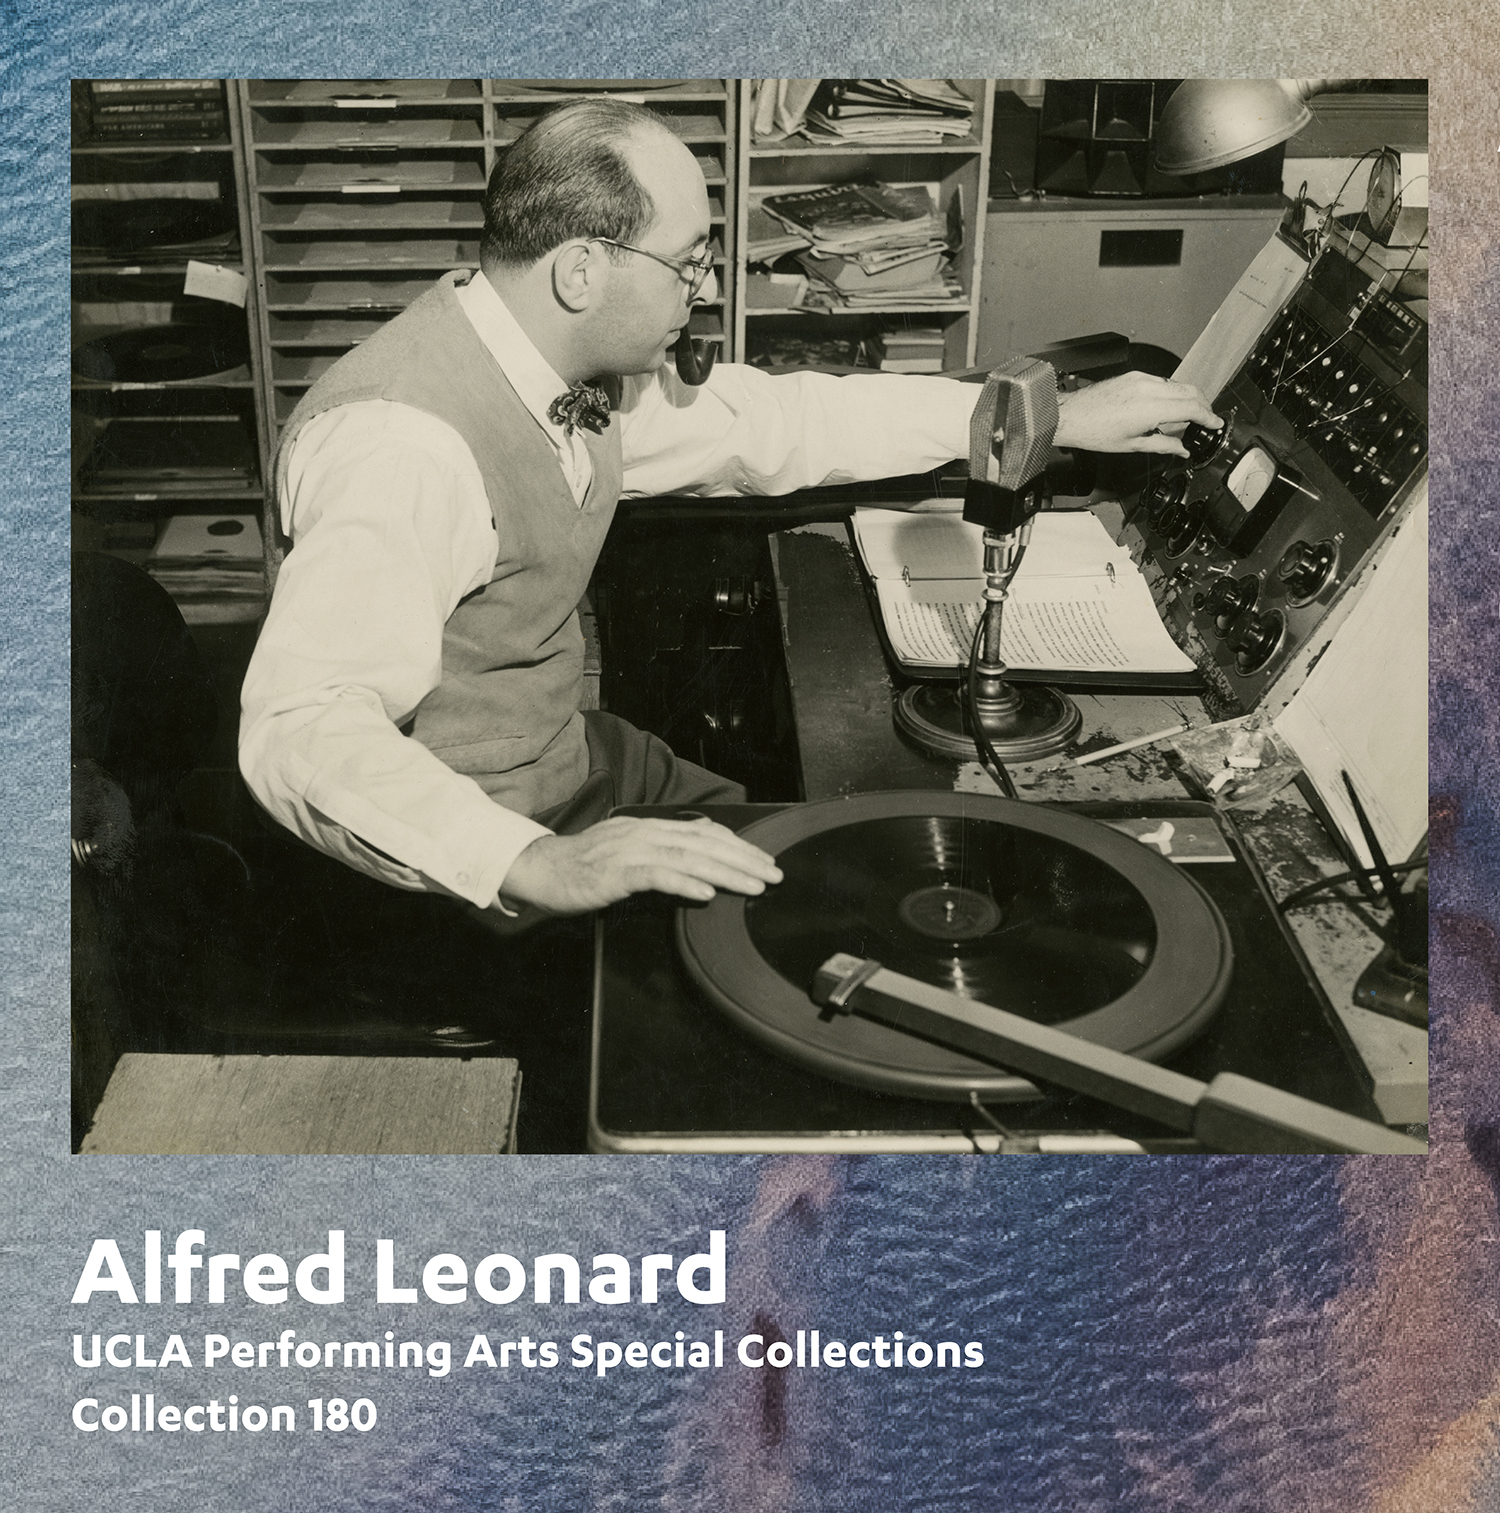 Alfred Leonard, UCLA Performing Arts Special Collections, Collection 180